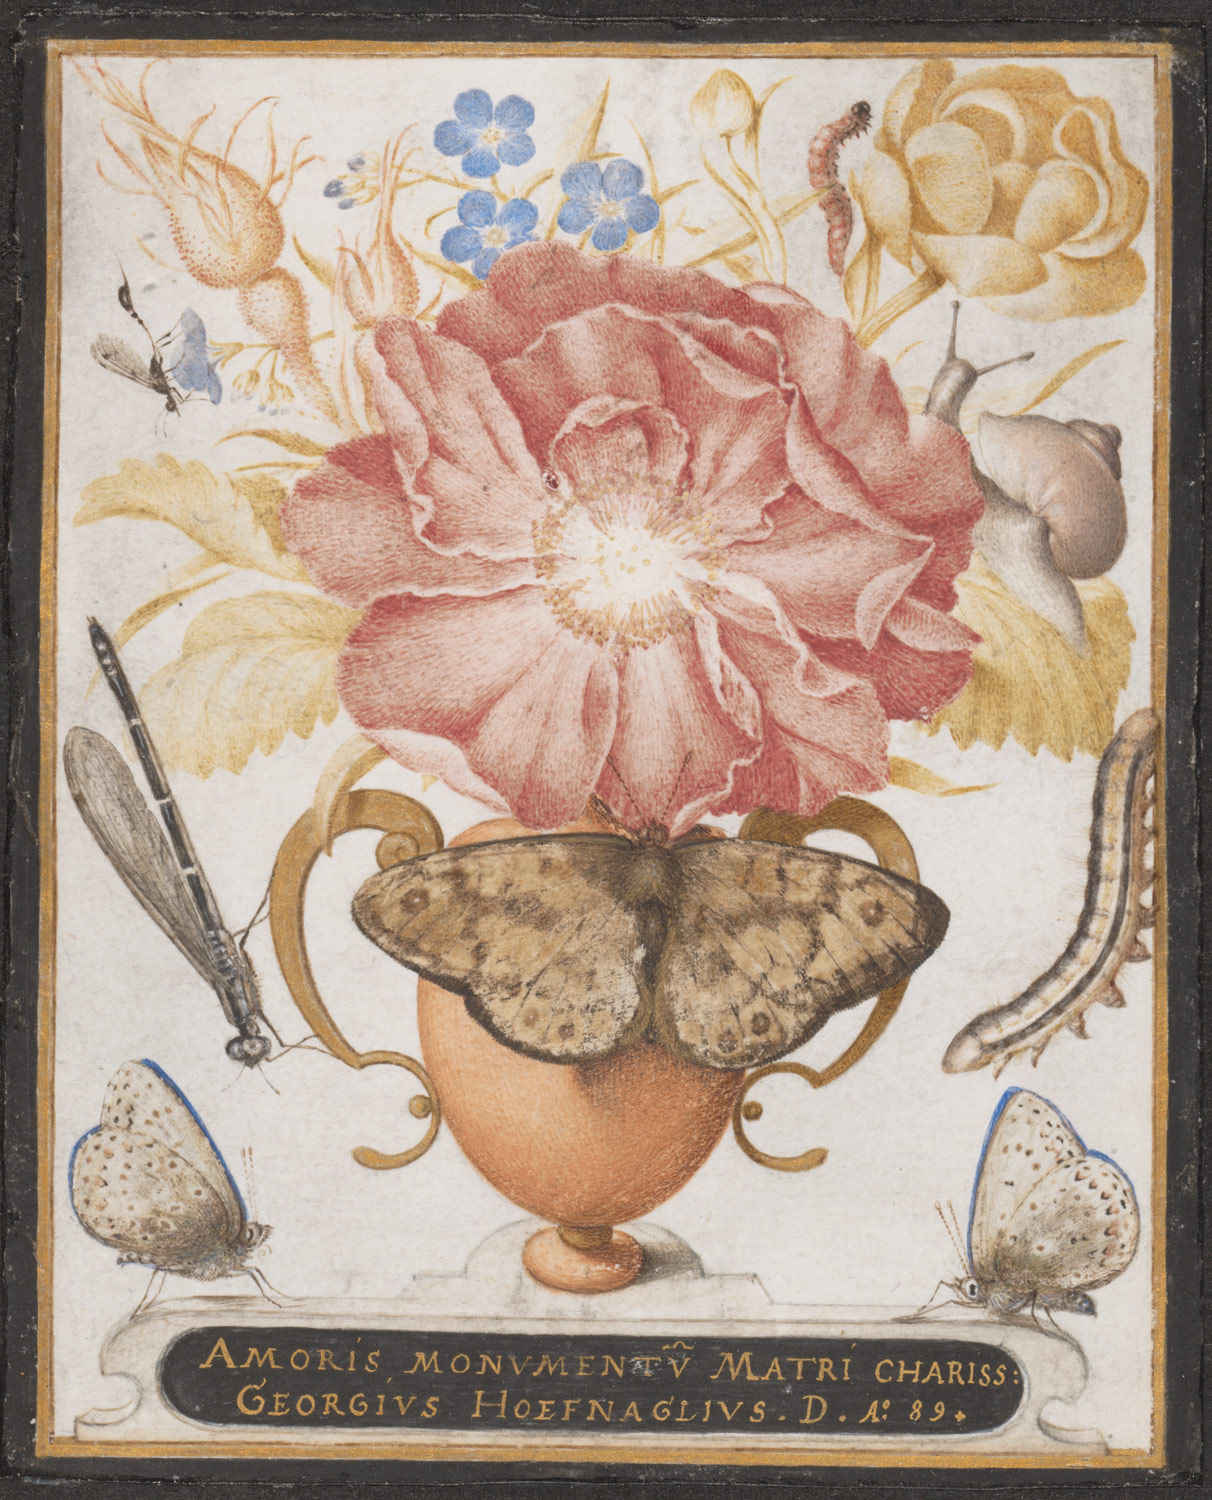 Still Life with Flowers, a Snail, and Insects